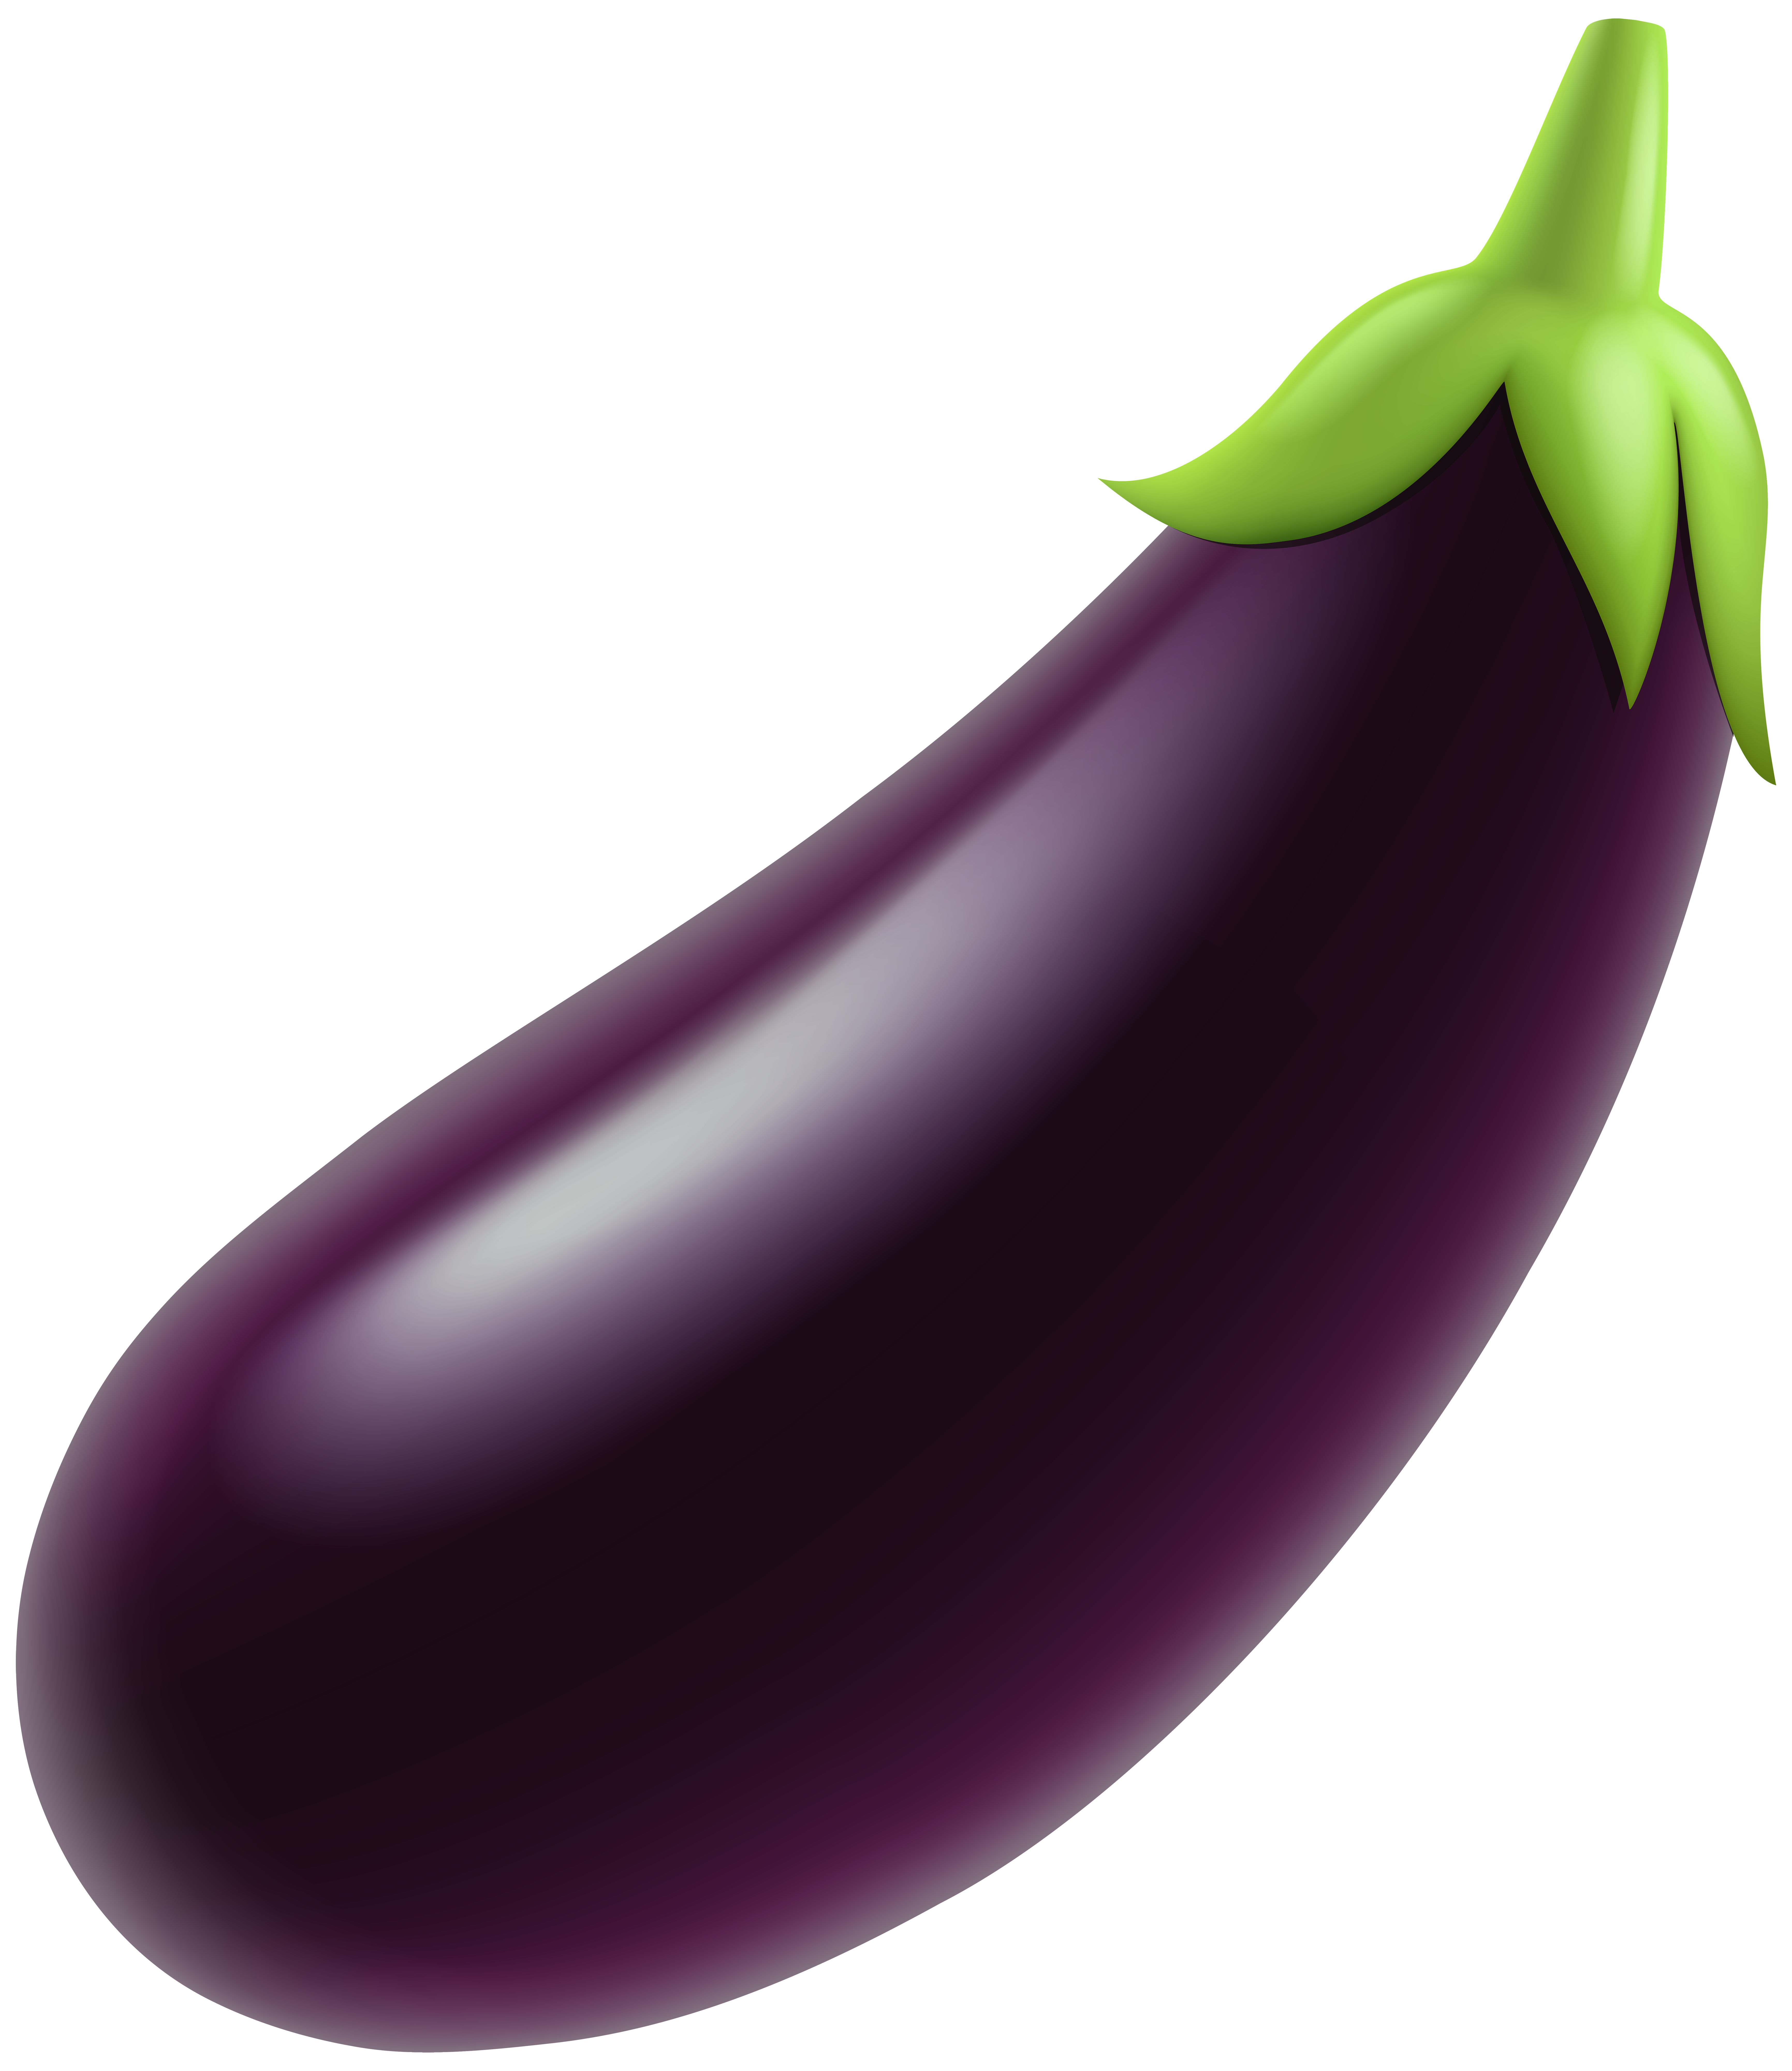 svg transparent Violet clipart purple food. Eggplant png clip art